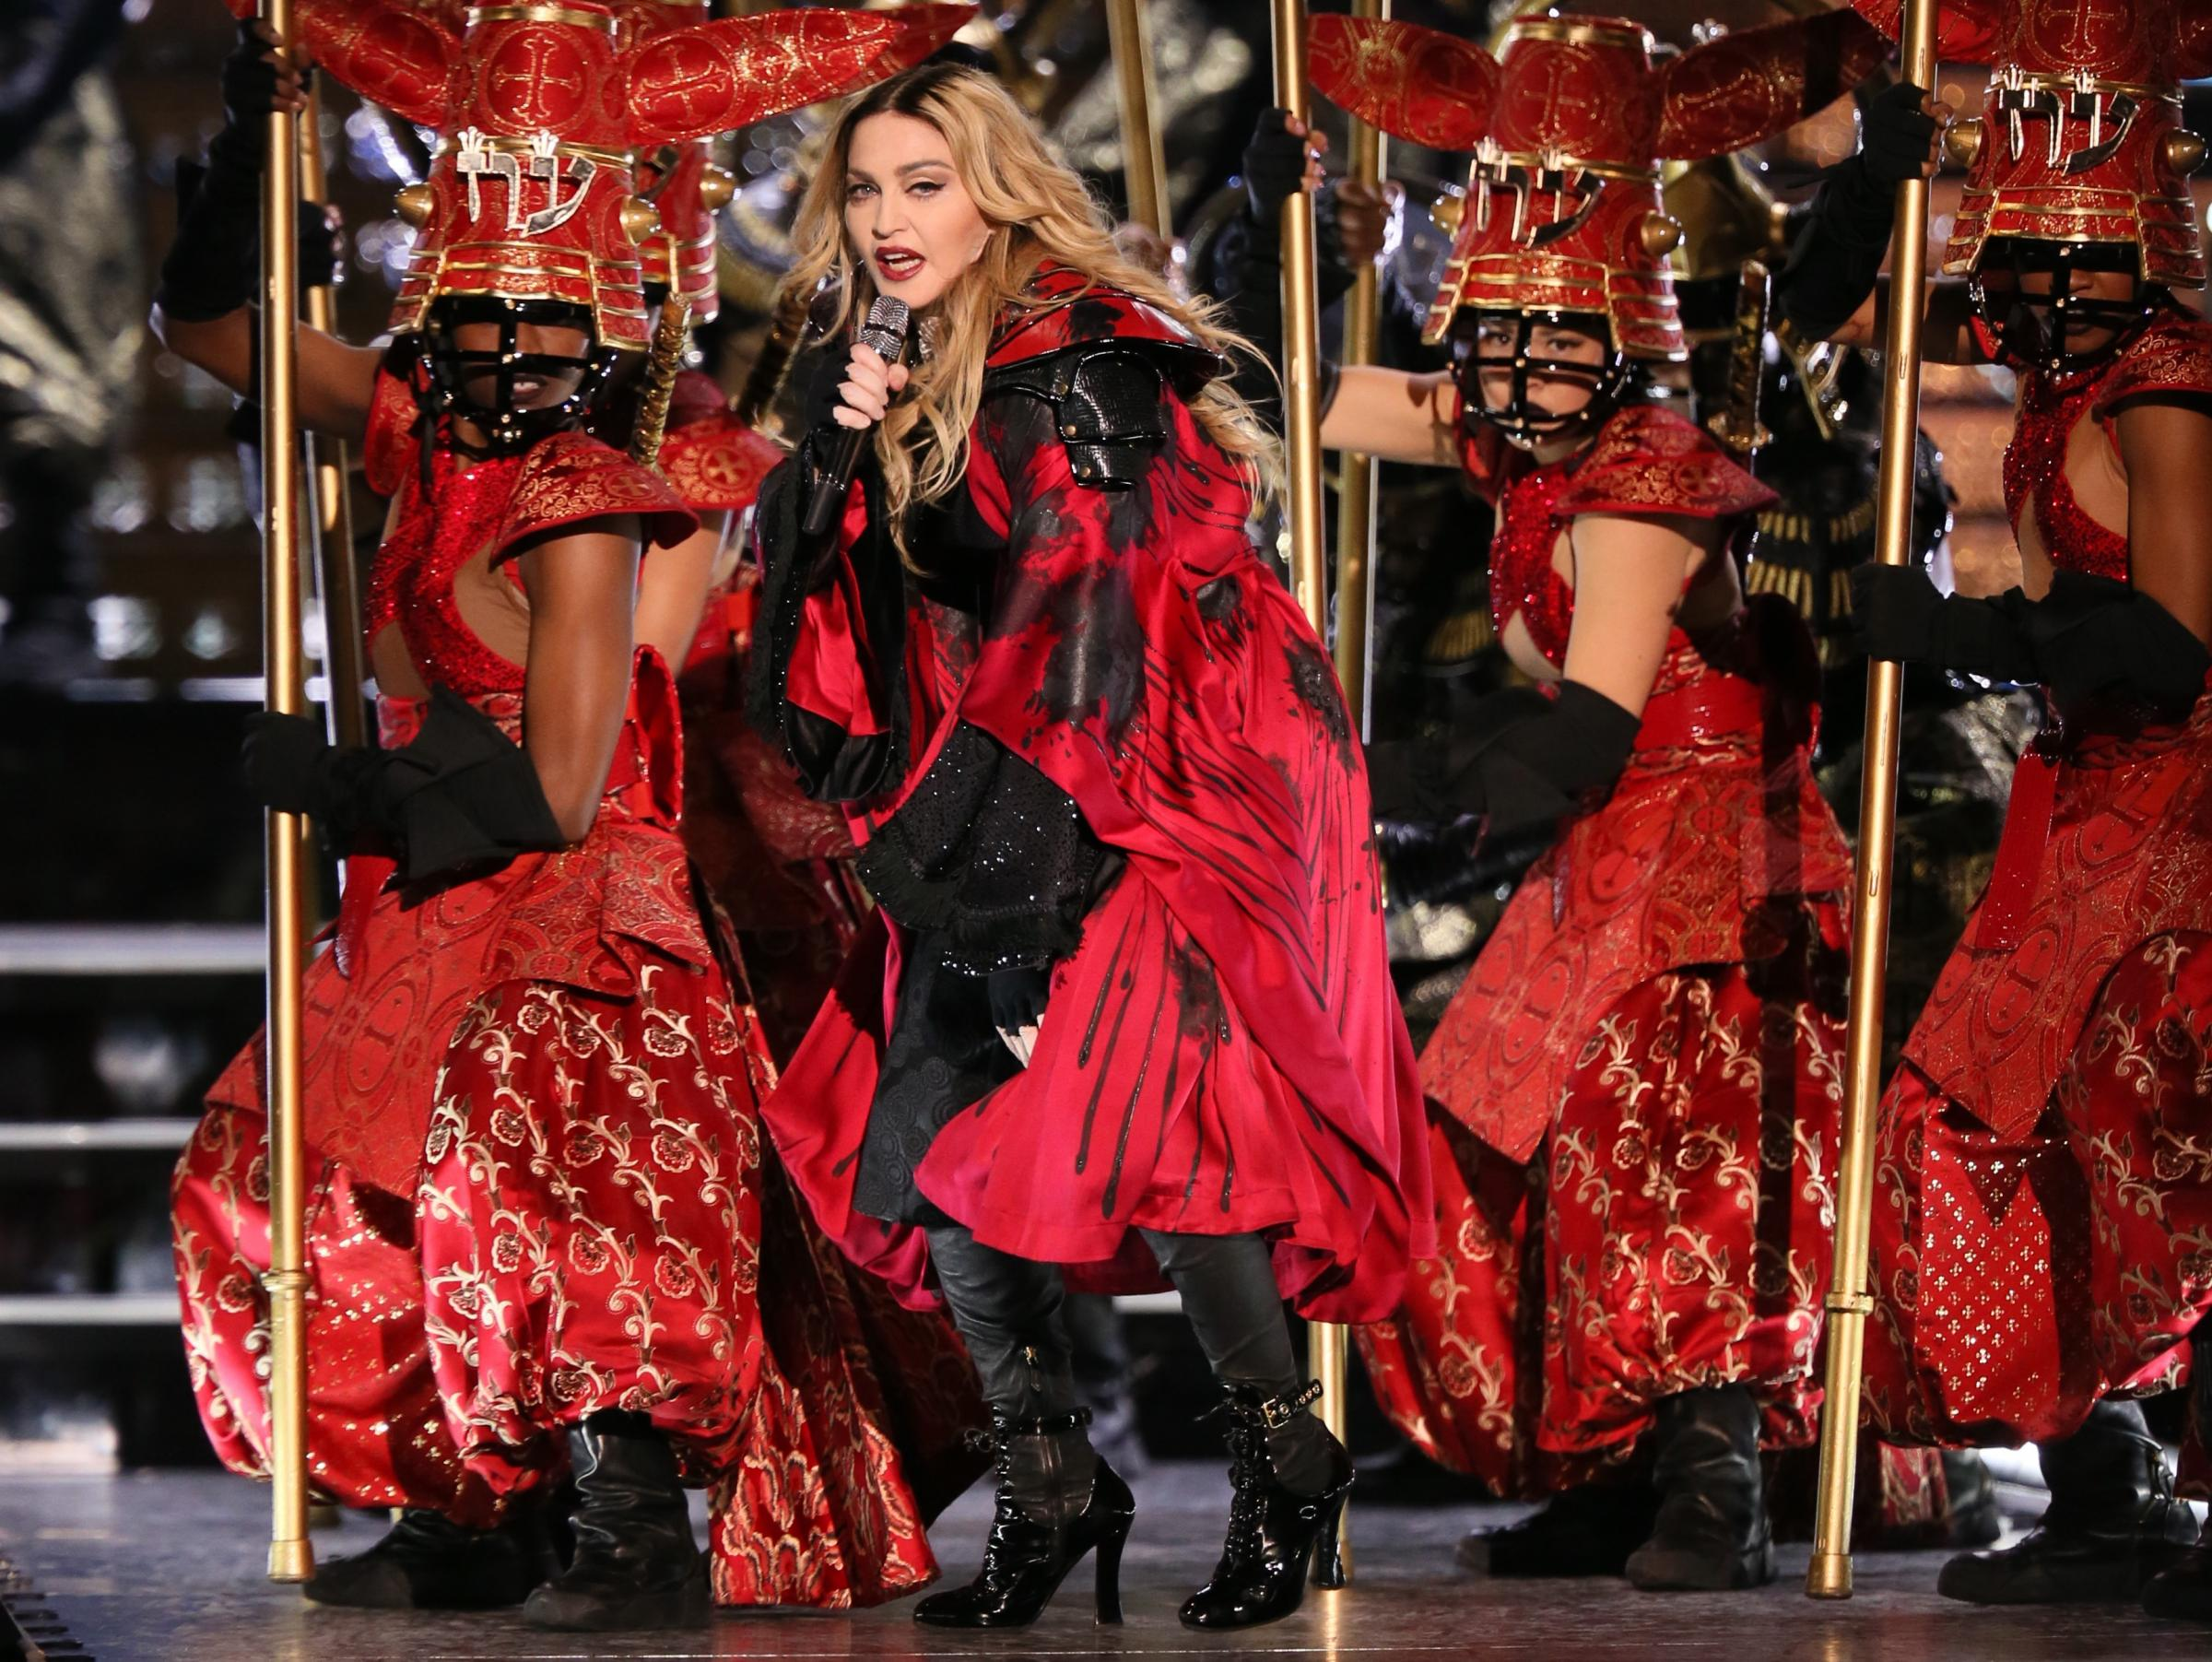 Madonna is reportedly being paid $1m to perform at the contest in Israel